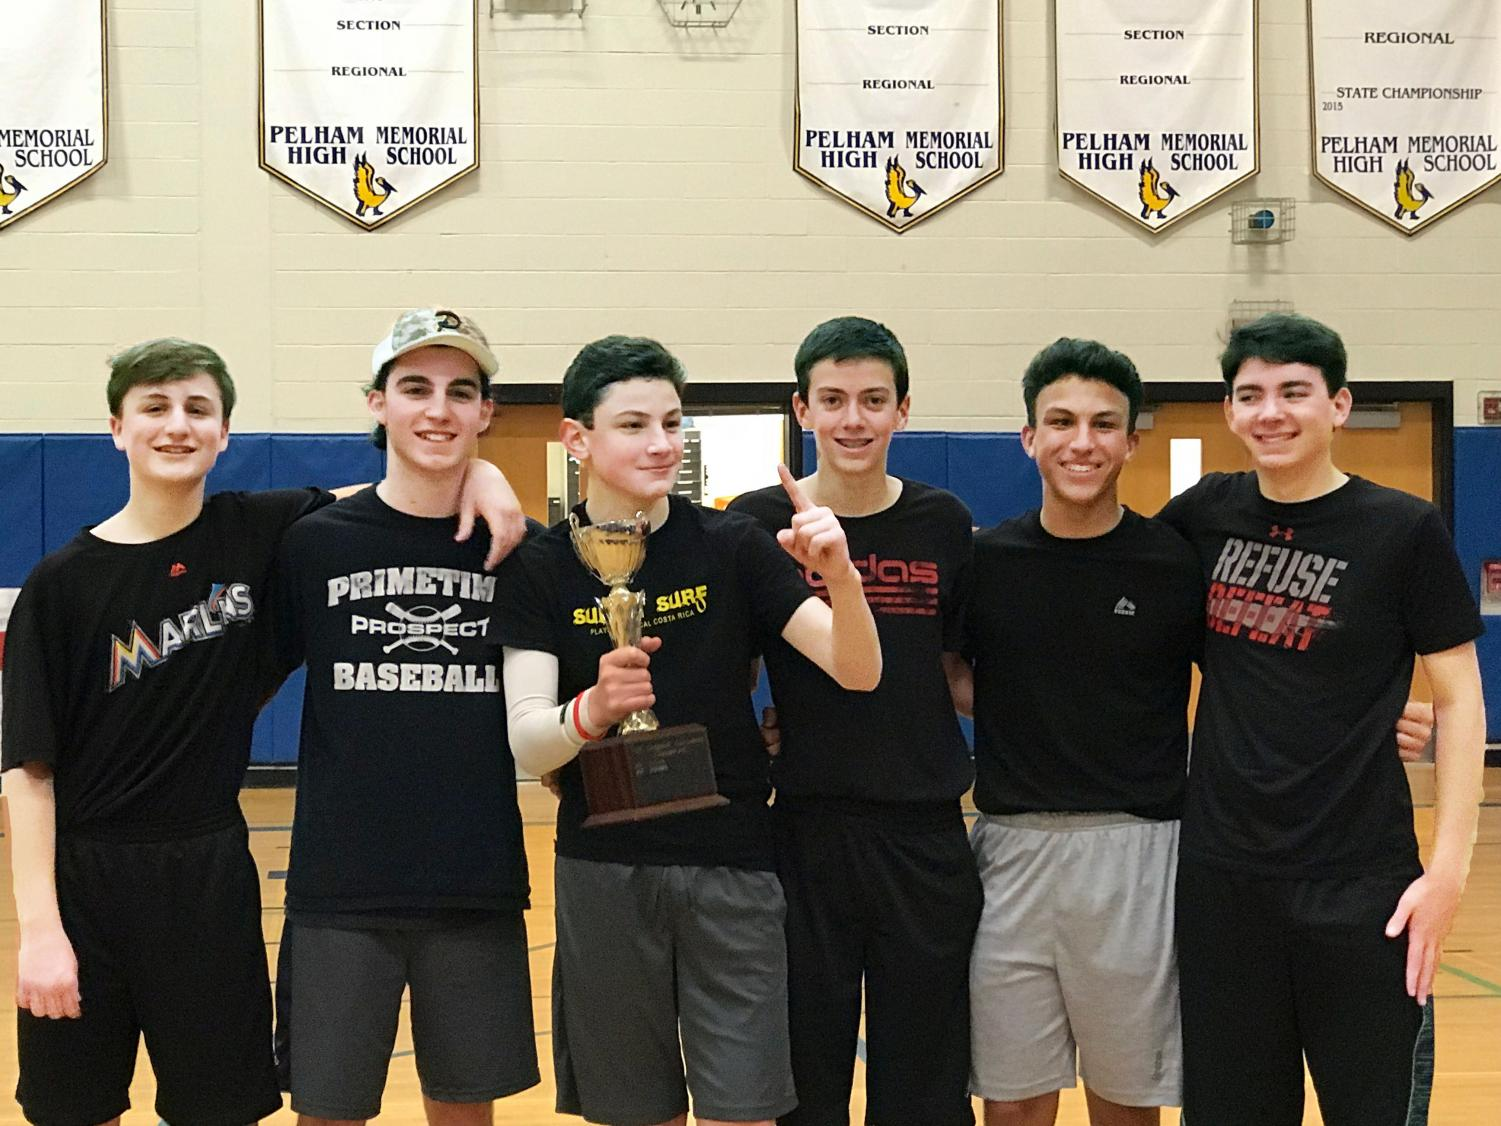 Winners of the CCC dodgeball tournament, the Purple Cobras, pose with their well-earned trophy.